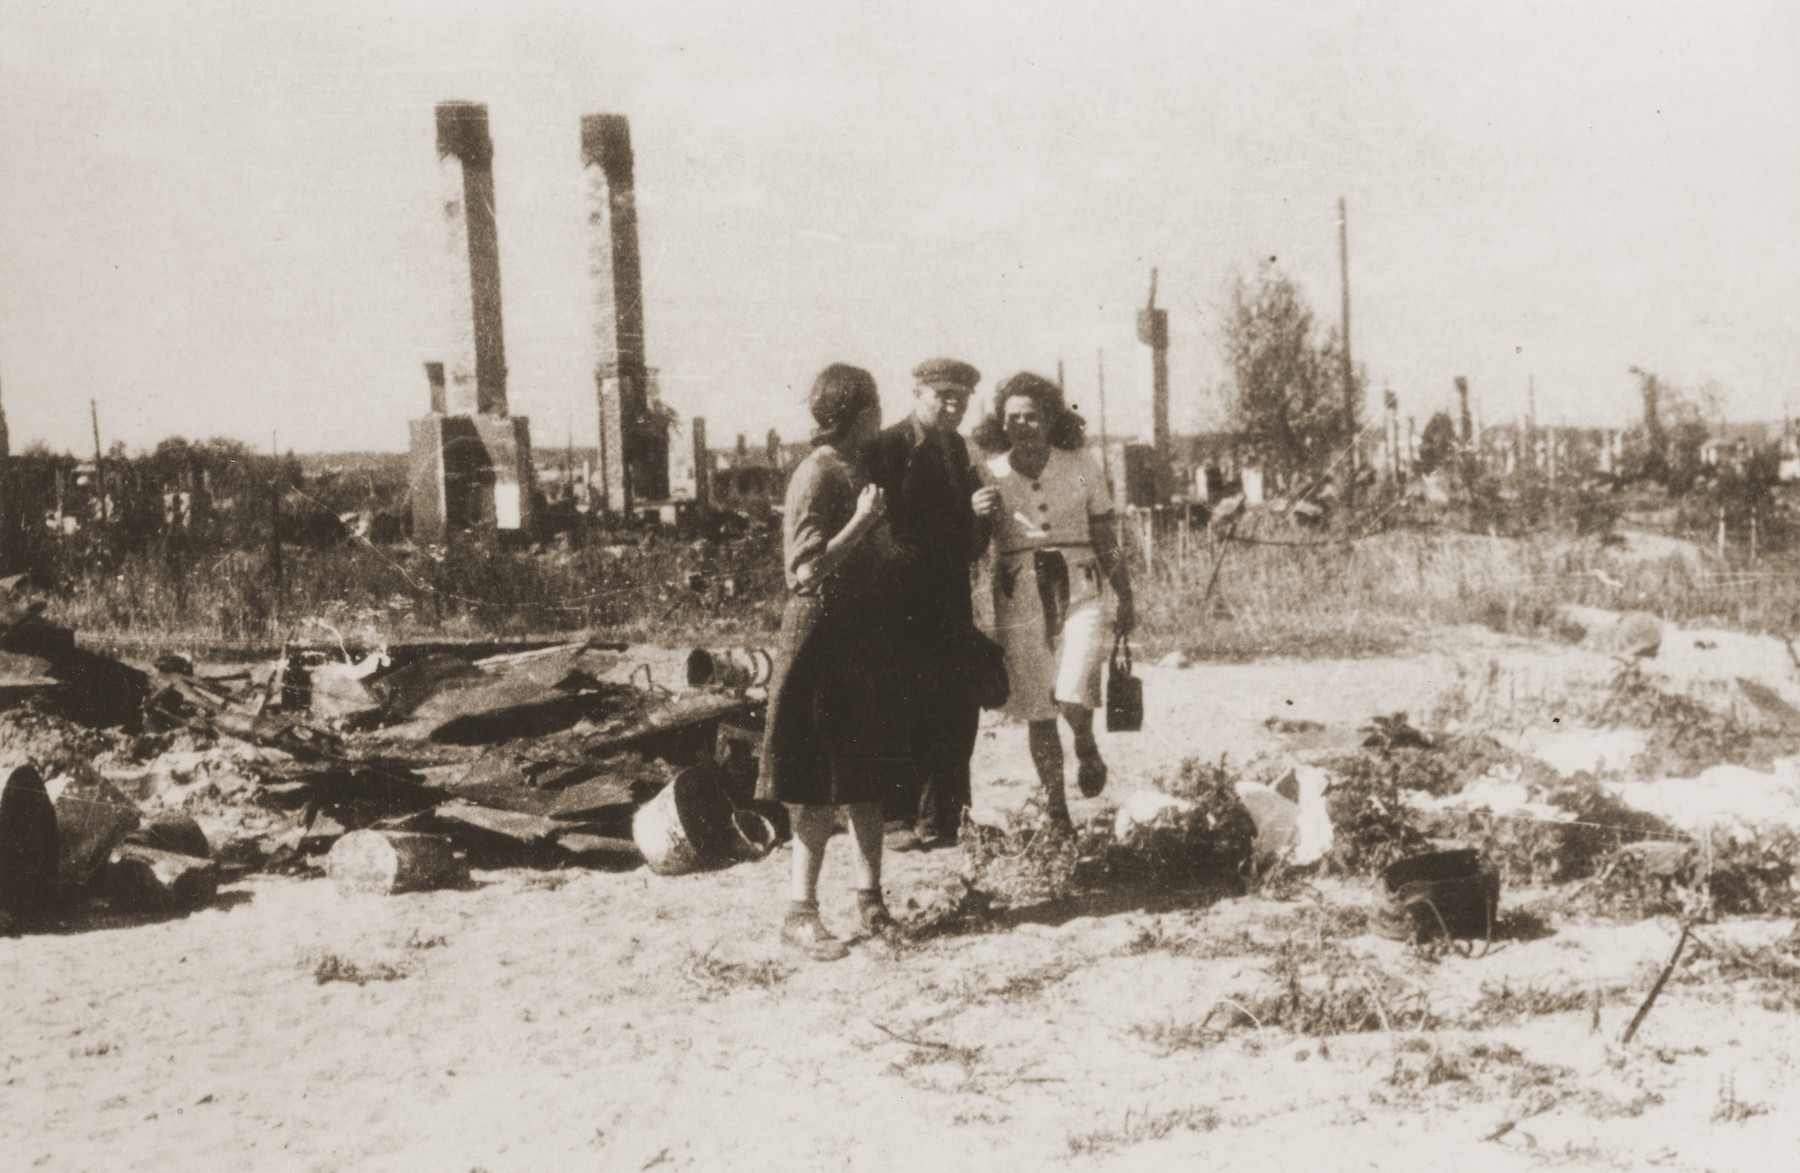 Survivors of the Kovno ghetto view the ruins of the ghetto after liberation.